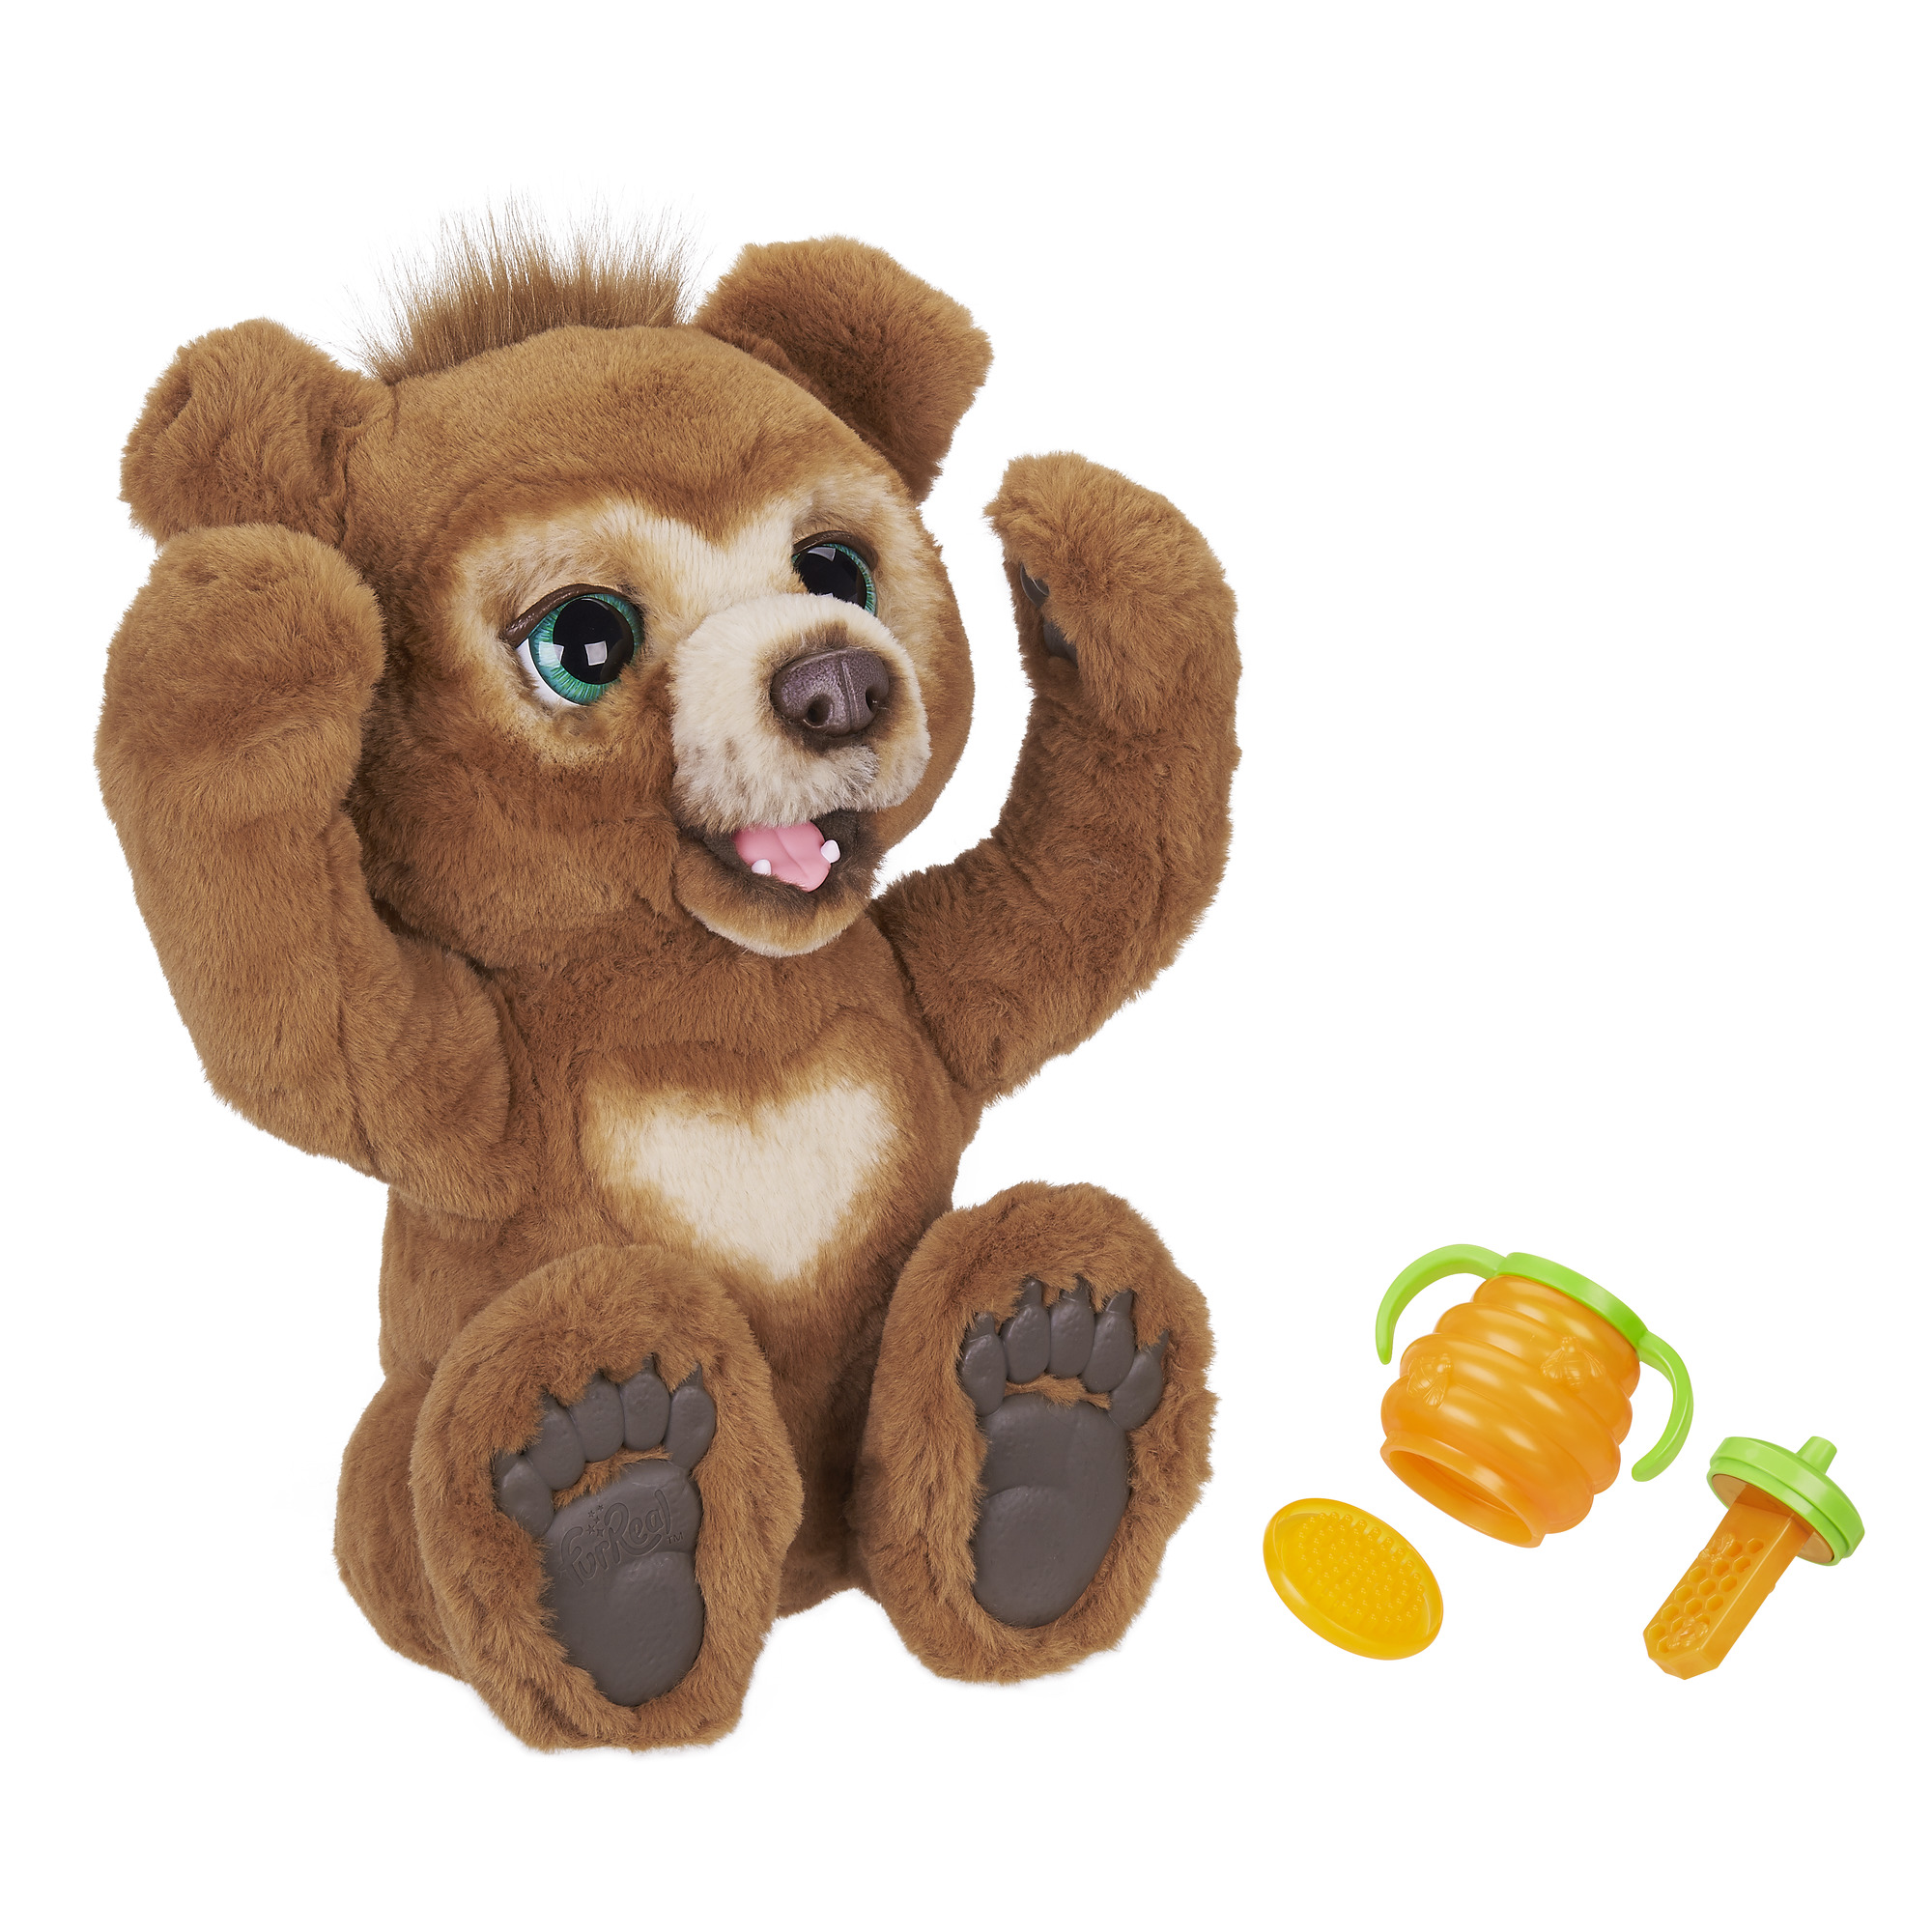 Image of furReal Cubby, the Curious Bear Interactive Plush Toy, Ages 4 and Up